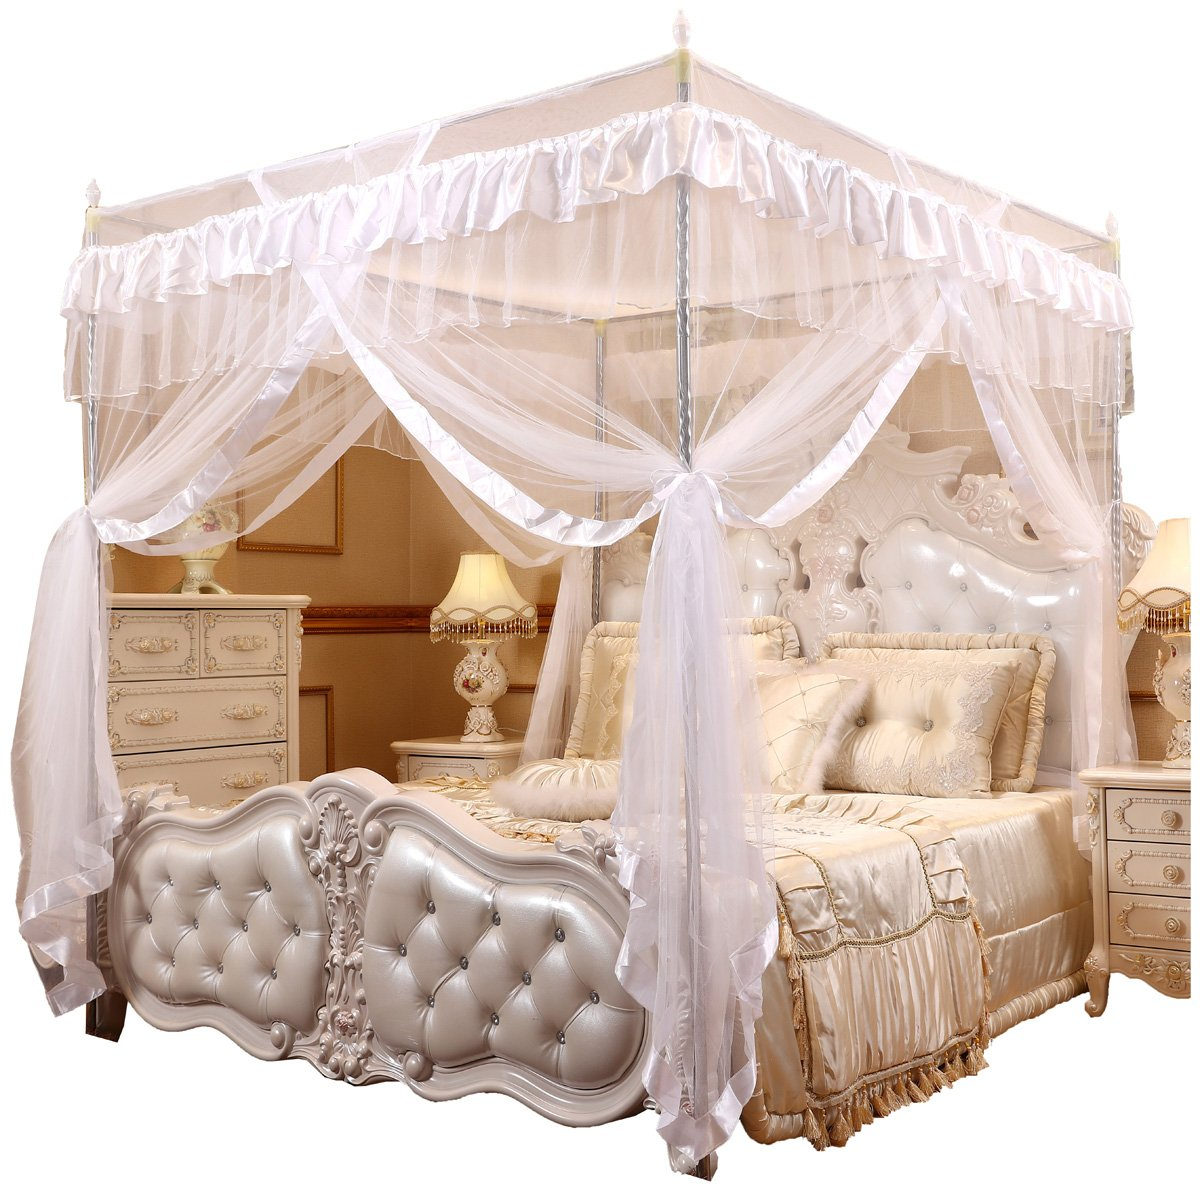 Mengersi Princess 4 Corners Post Bed Curtain Canopy Netting